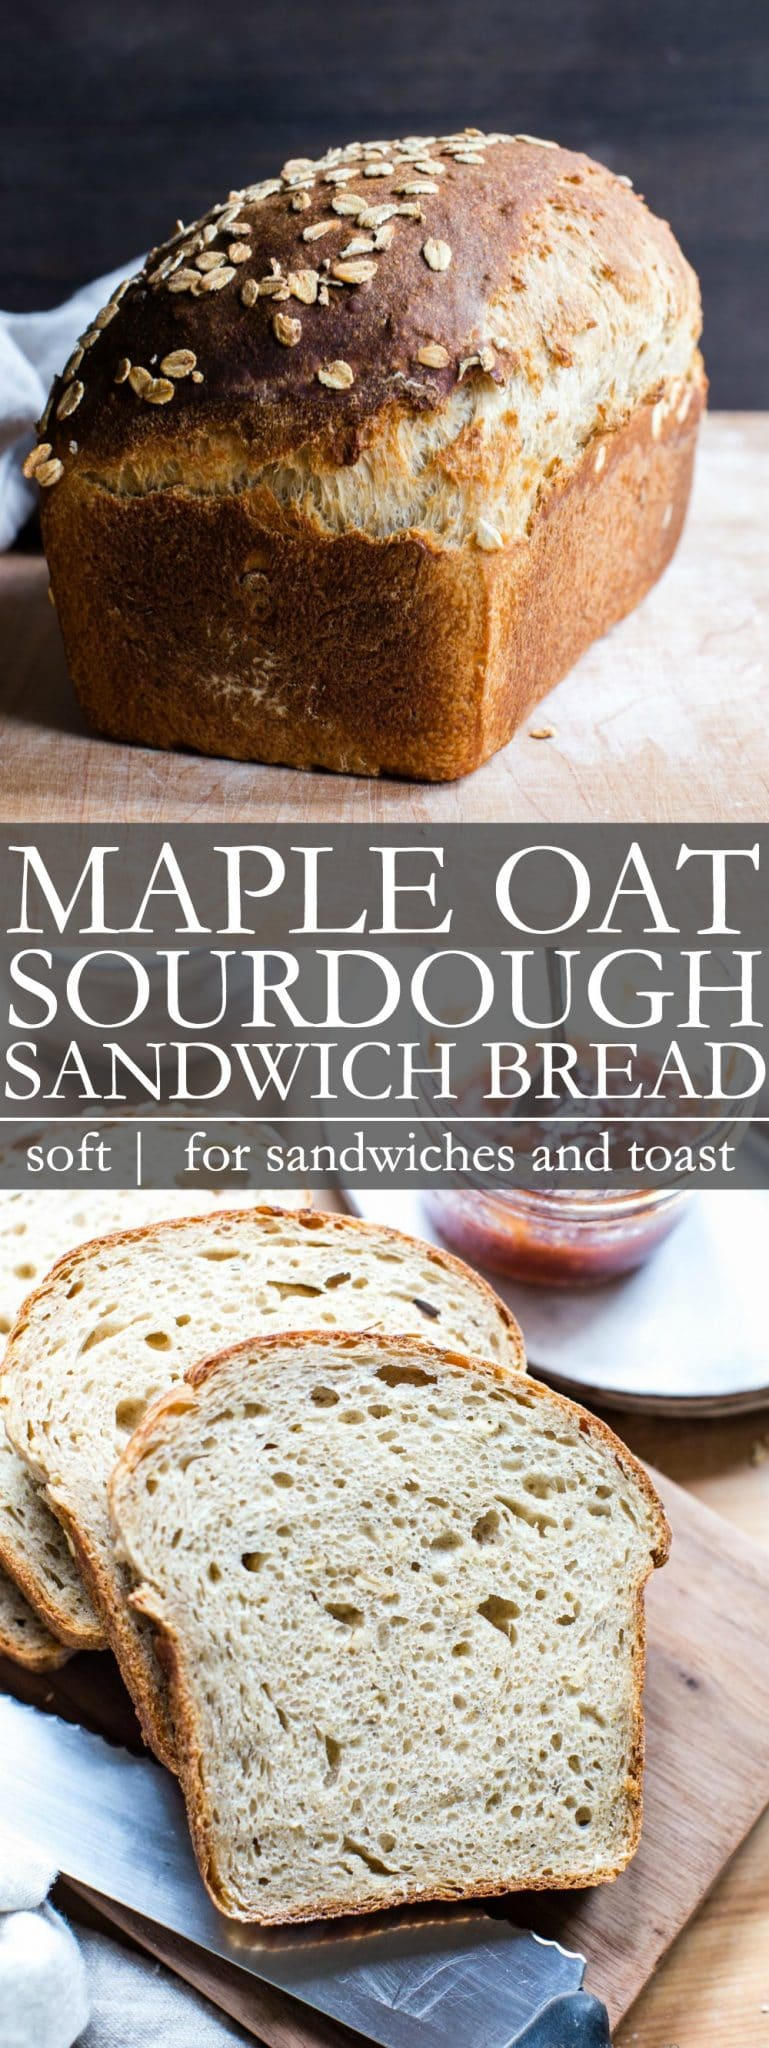 Maple Oat Sourdough Sandwich Bread Pin for Pinterest